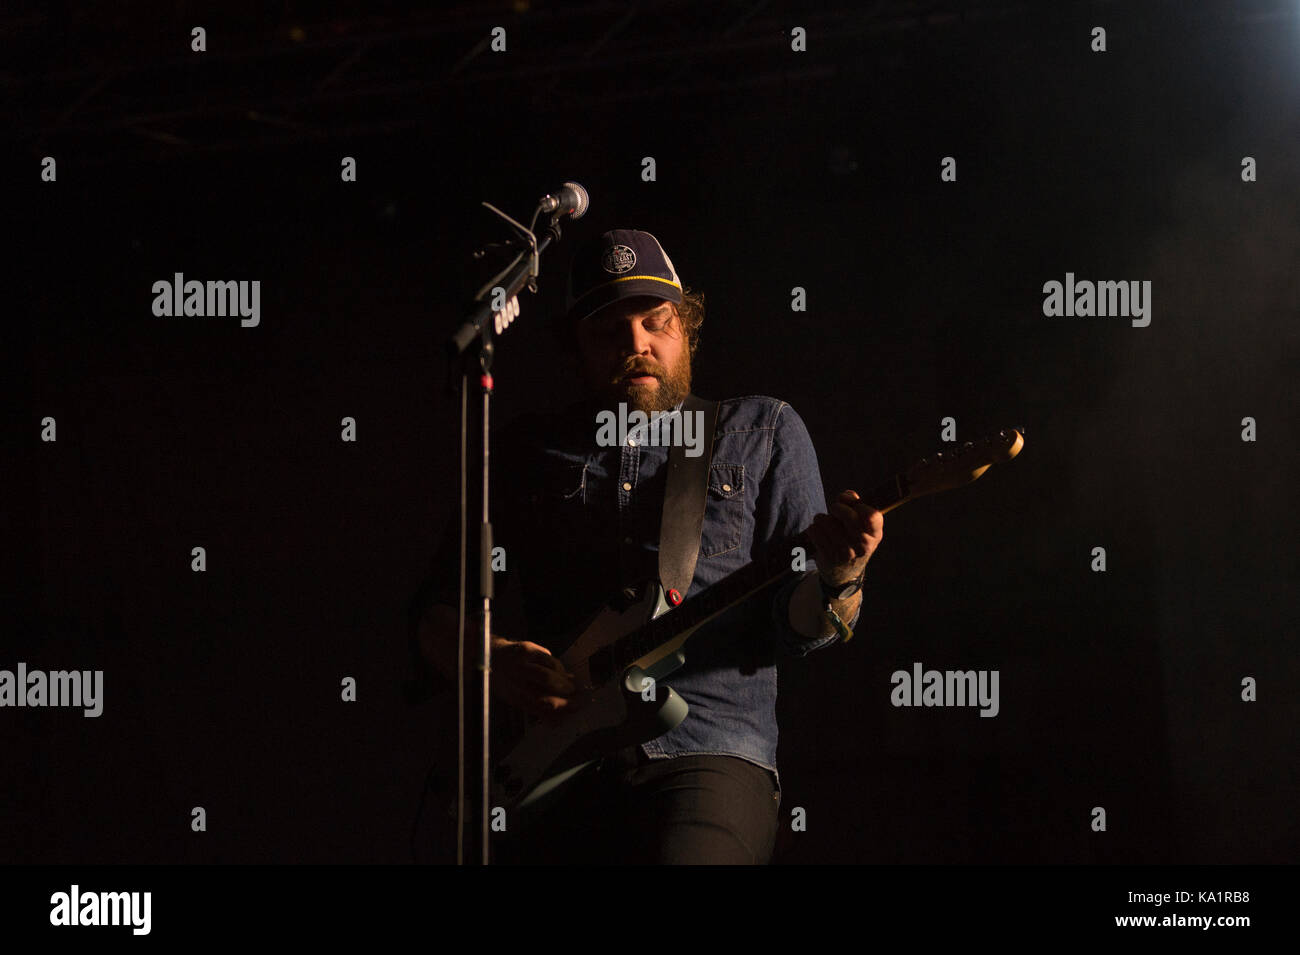 Thornhill, Schottland, Großbritannien - 1 September, 2017: Scott Hutchison von Scottish indie rock Band verängstigten Stockbild